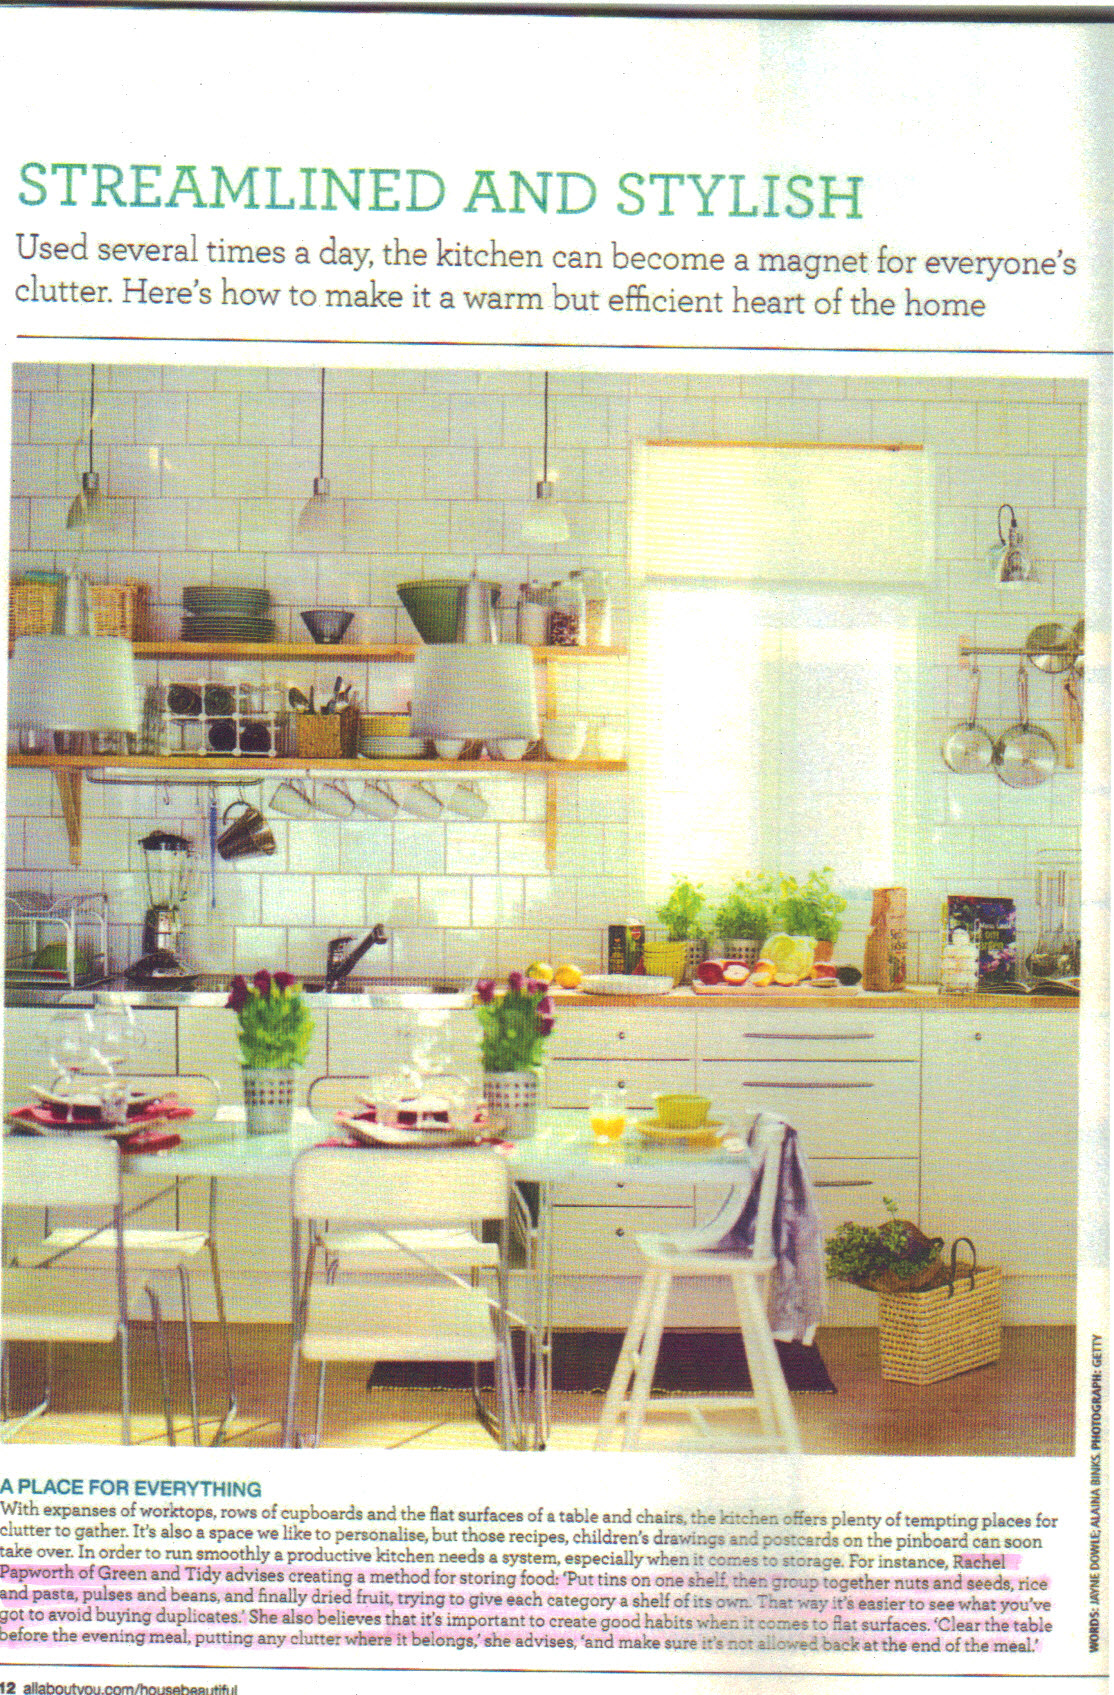 House Beautiful Feb 2013 p12 -  highlight